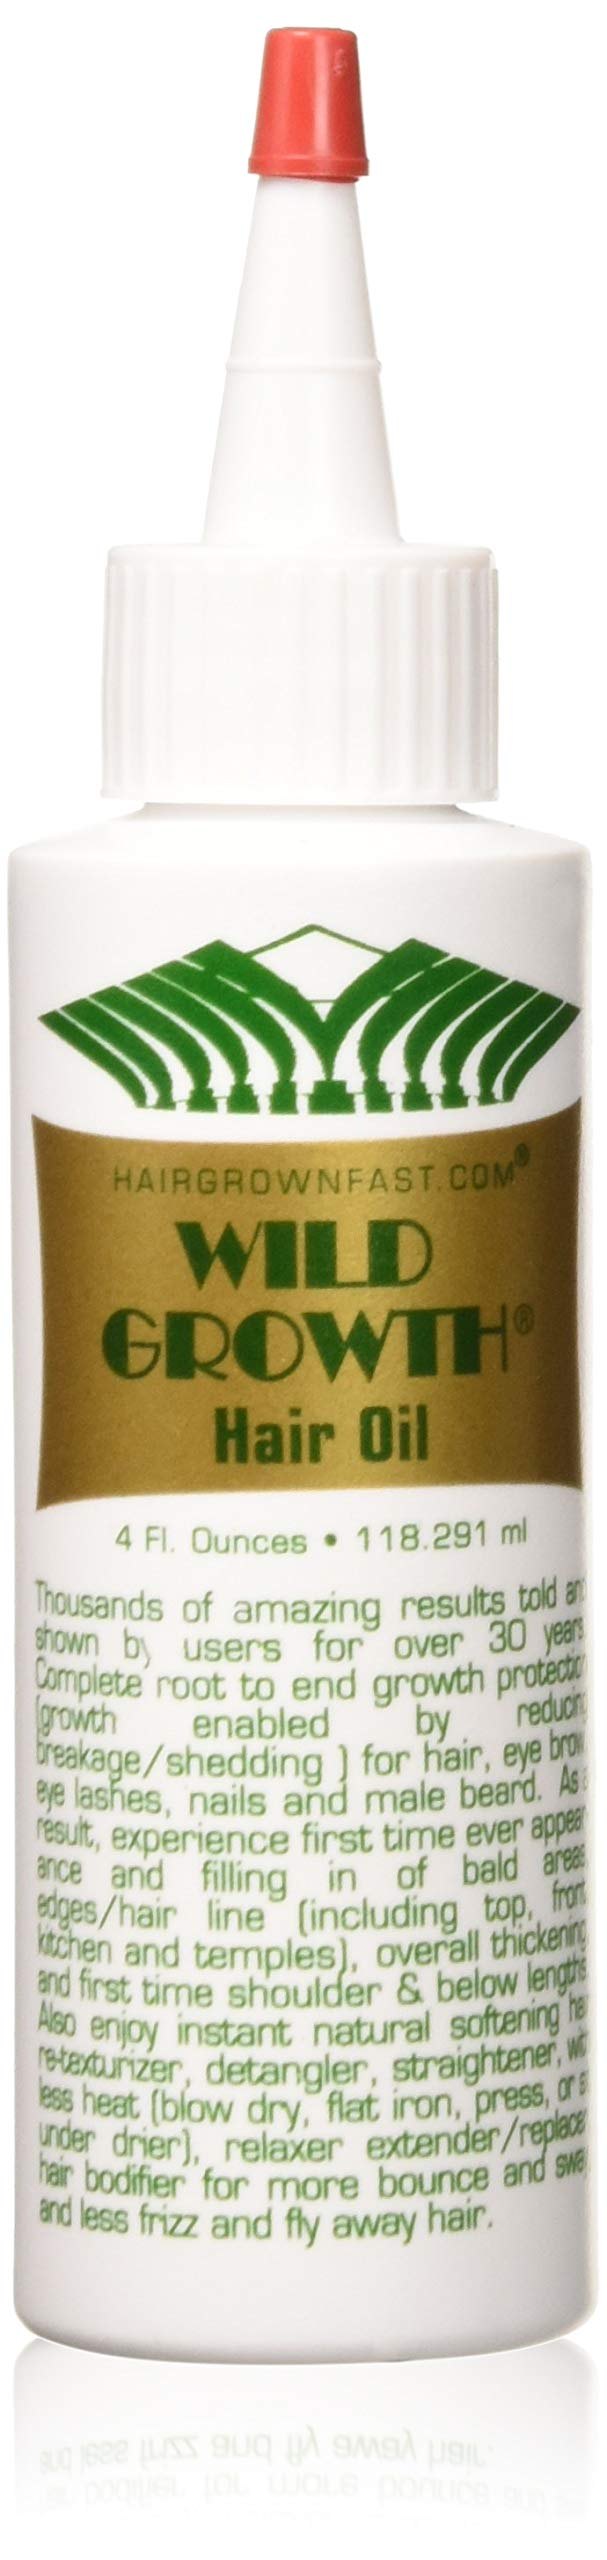 Wild Growth Hair Oil 4oz ''Pack of 2'' by Wild Growth